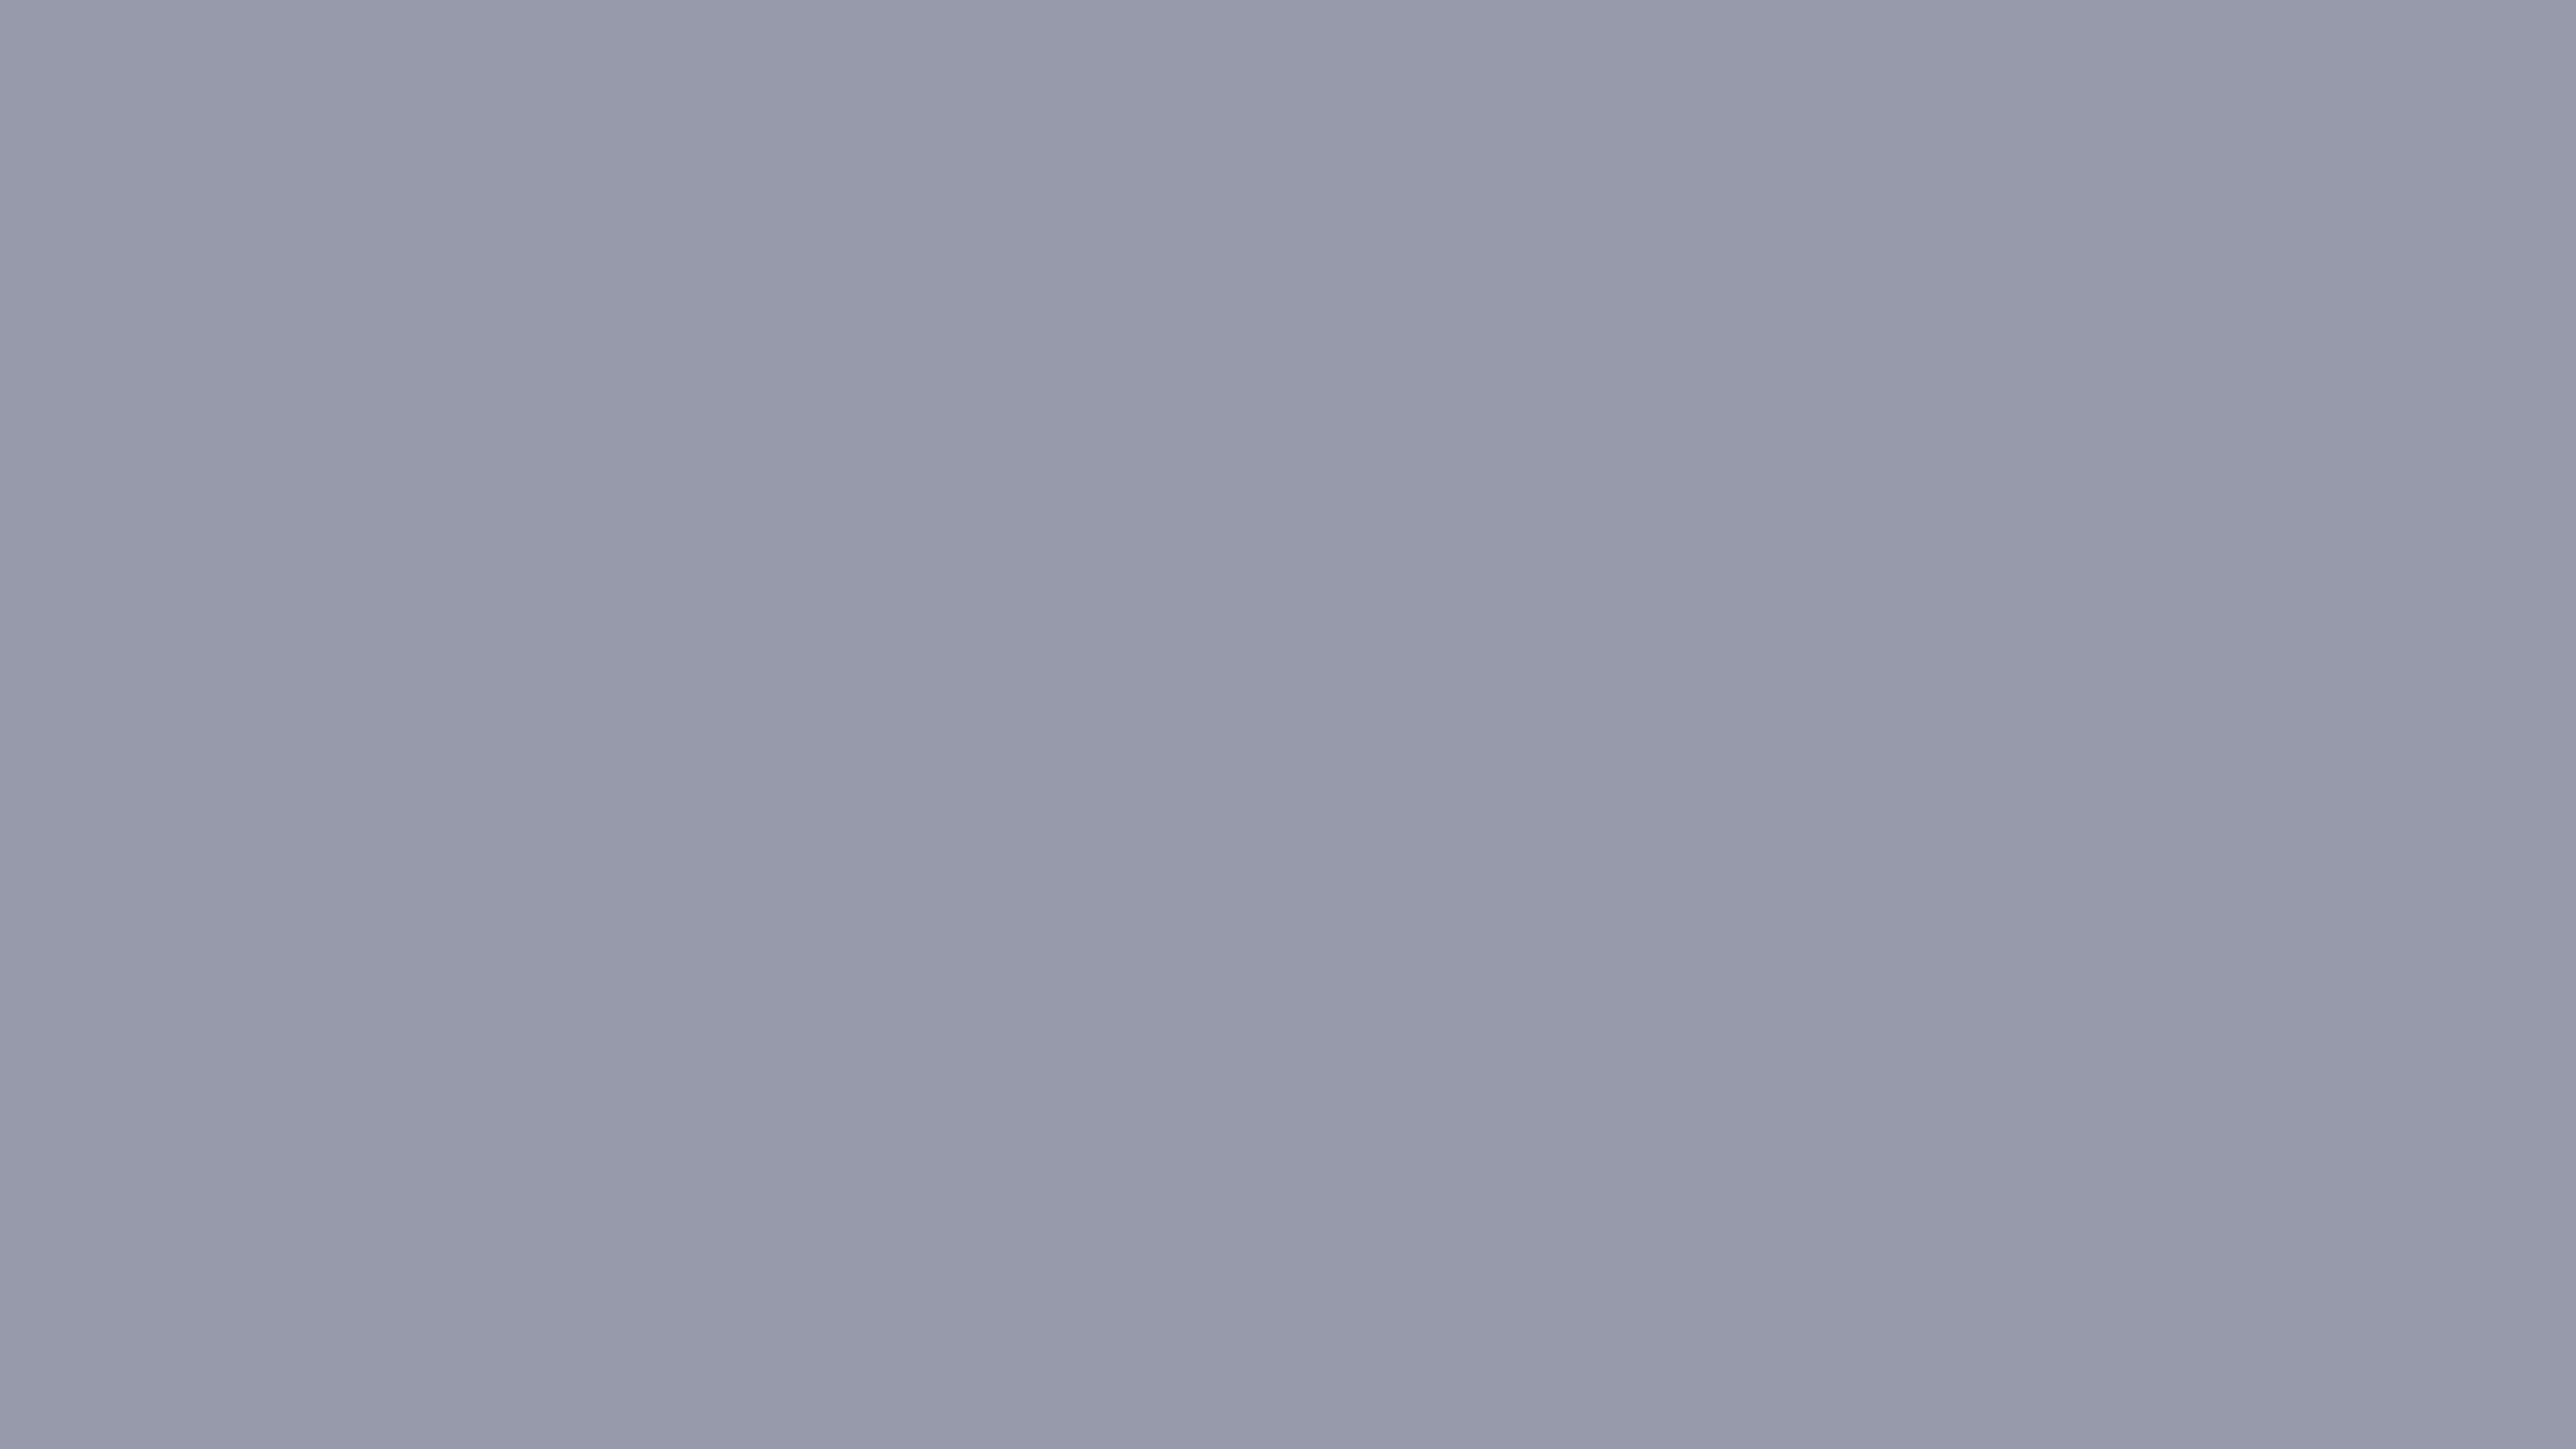 5120x2880 Manatee Solid Color Background